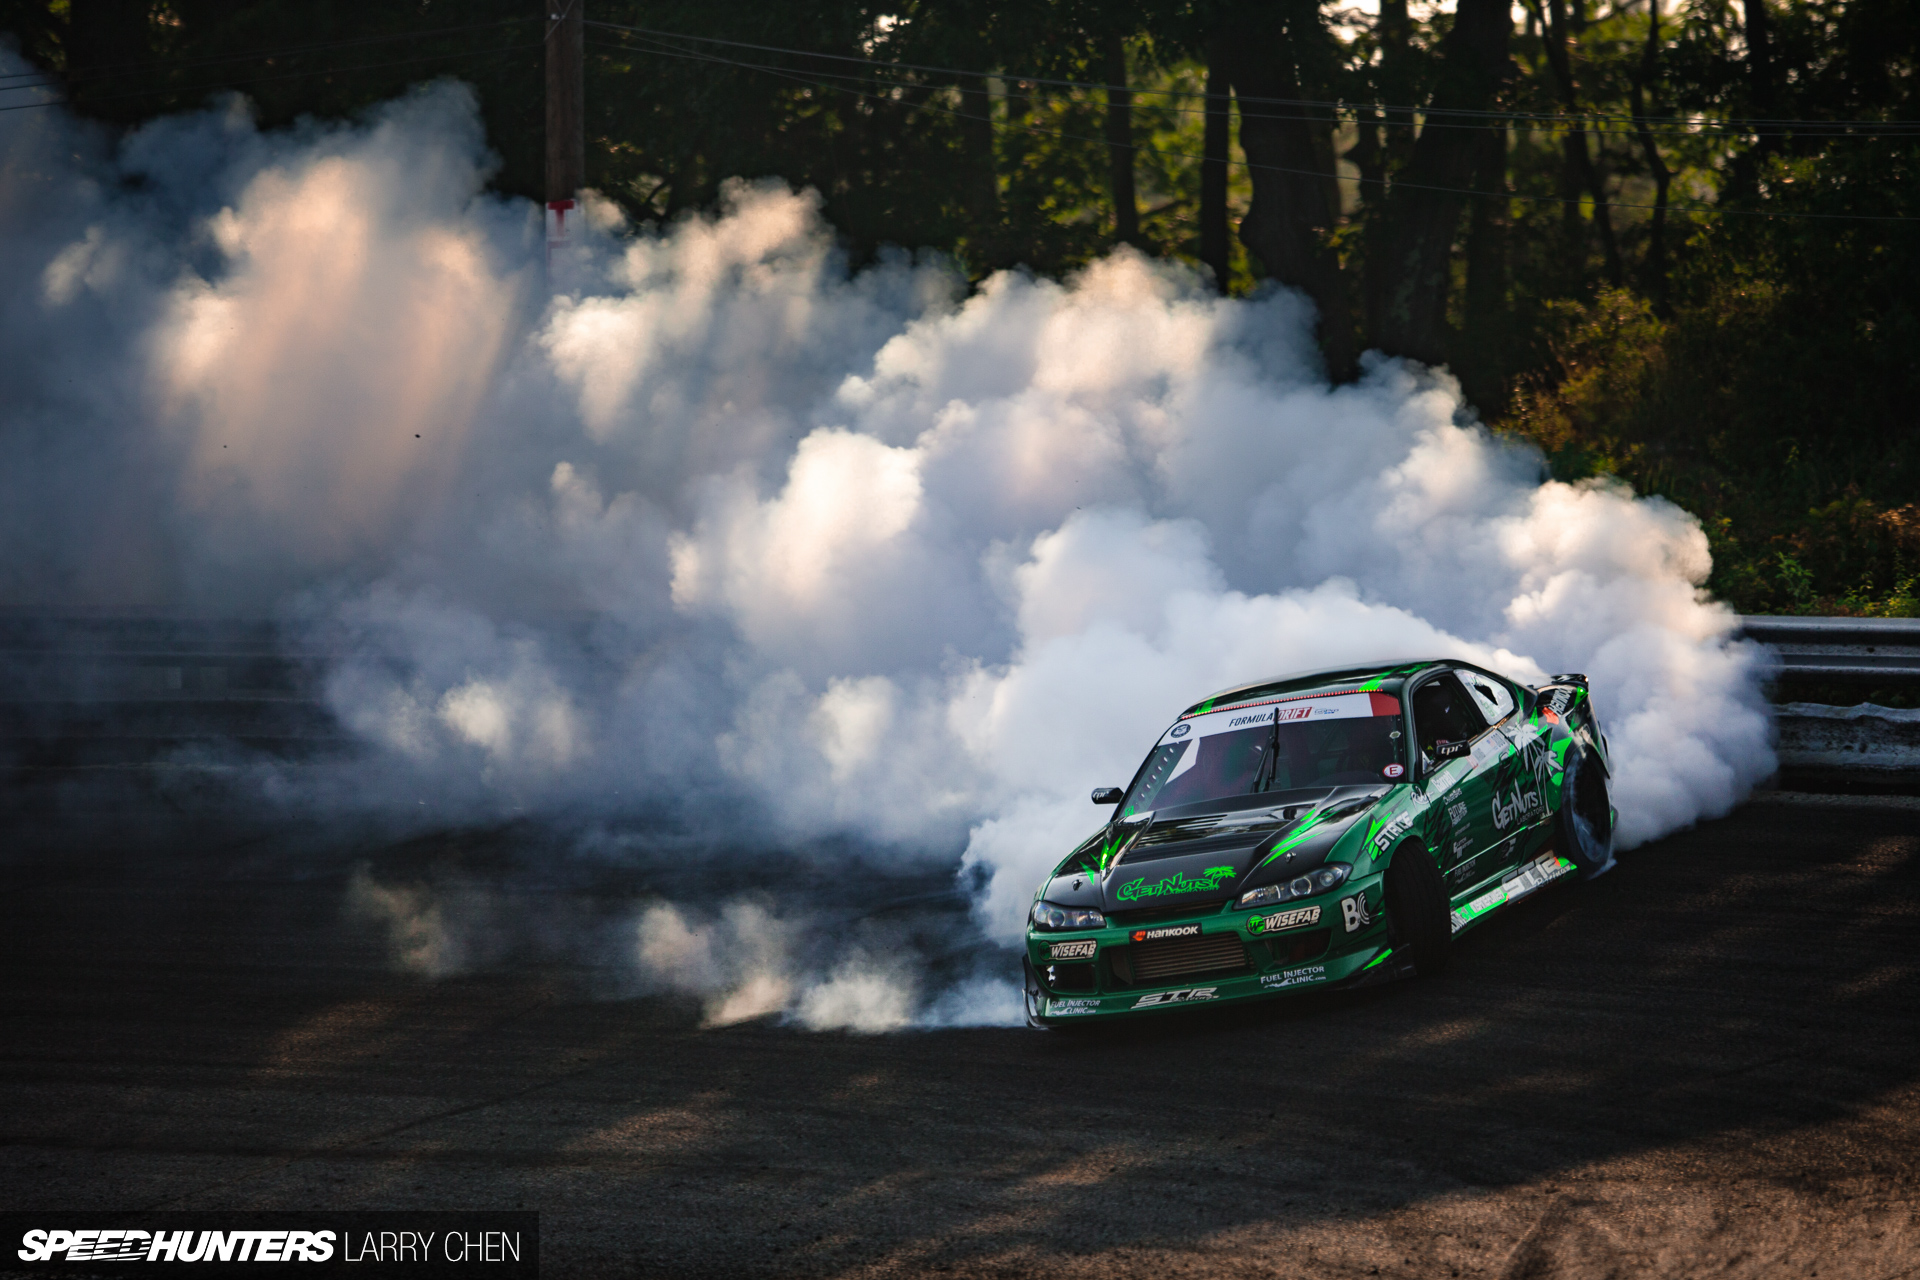 Best Car Drifting Wallpapers A Photographic Year In Review Best Of Drift 2015